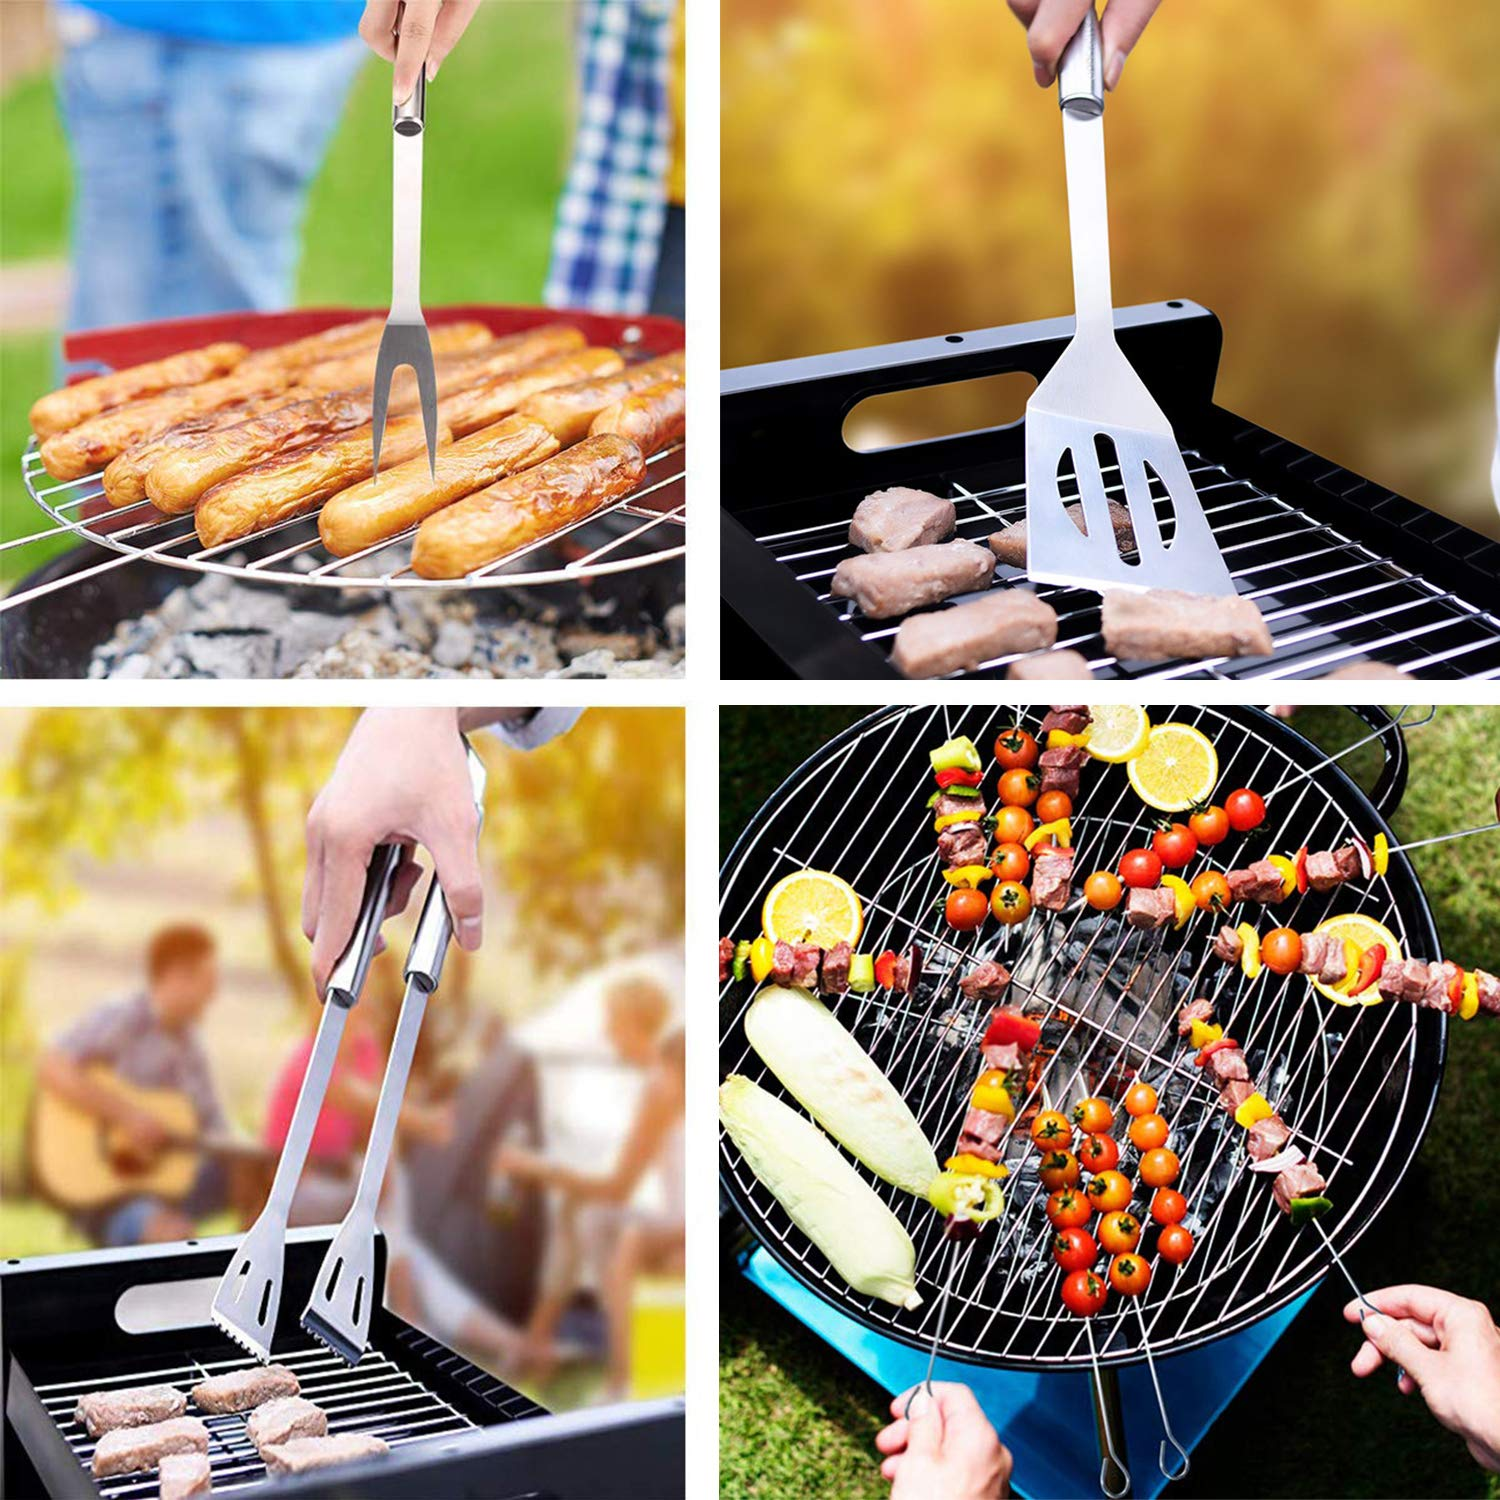 Ideal Gift on Birthday Wedding KCZAZY 7pcs BBQ Grill Accessories Set Heavy Duty Stainless Steel Grilling Utensils with Non-Slip Handle in Aluminum